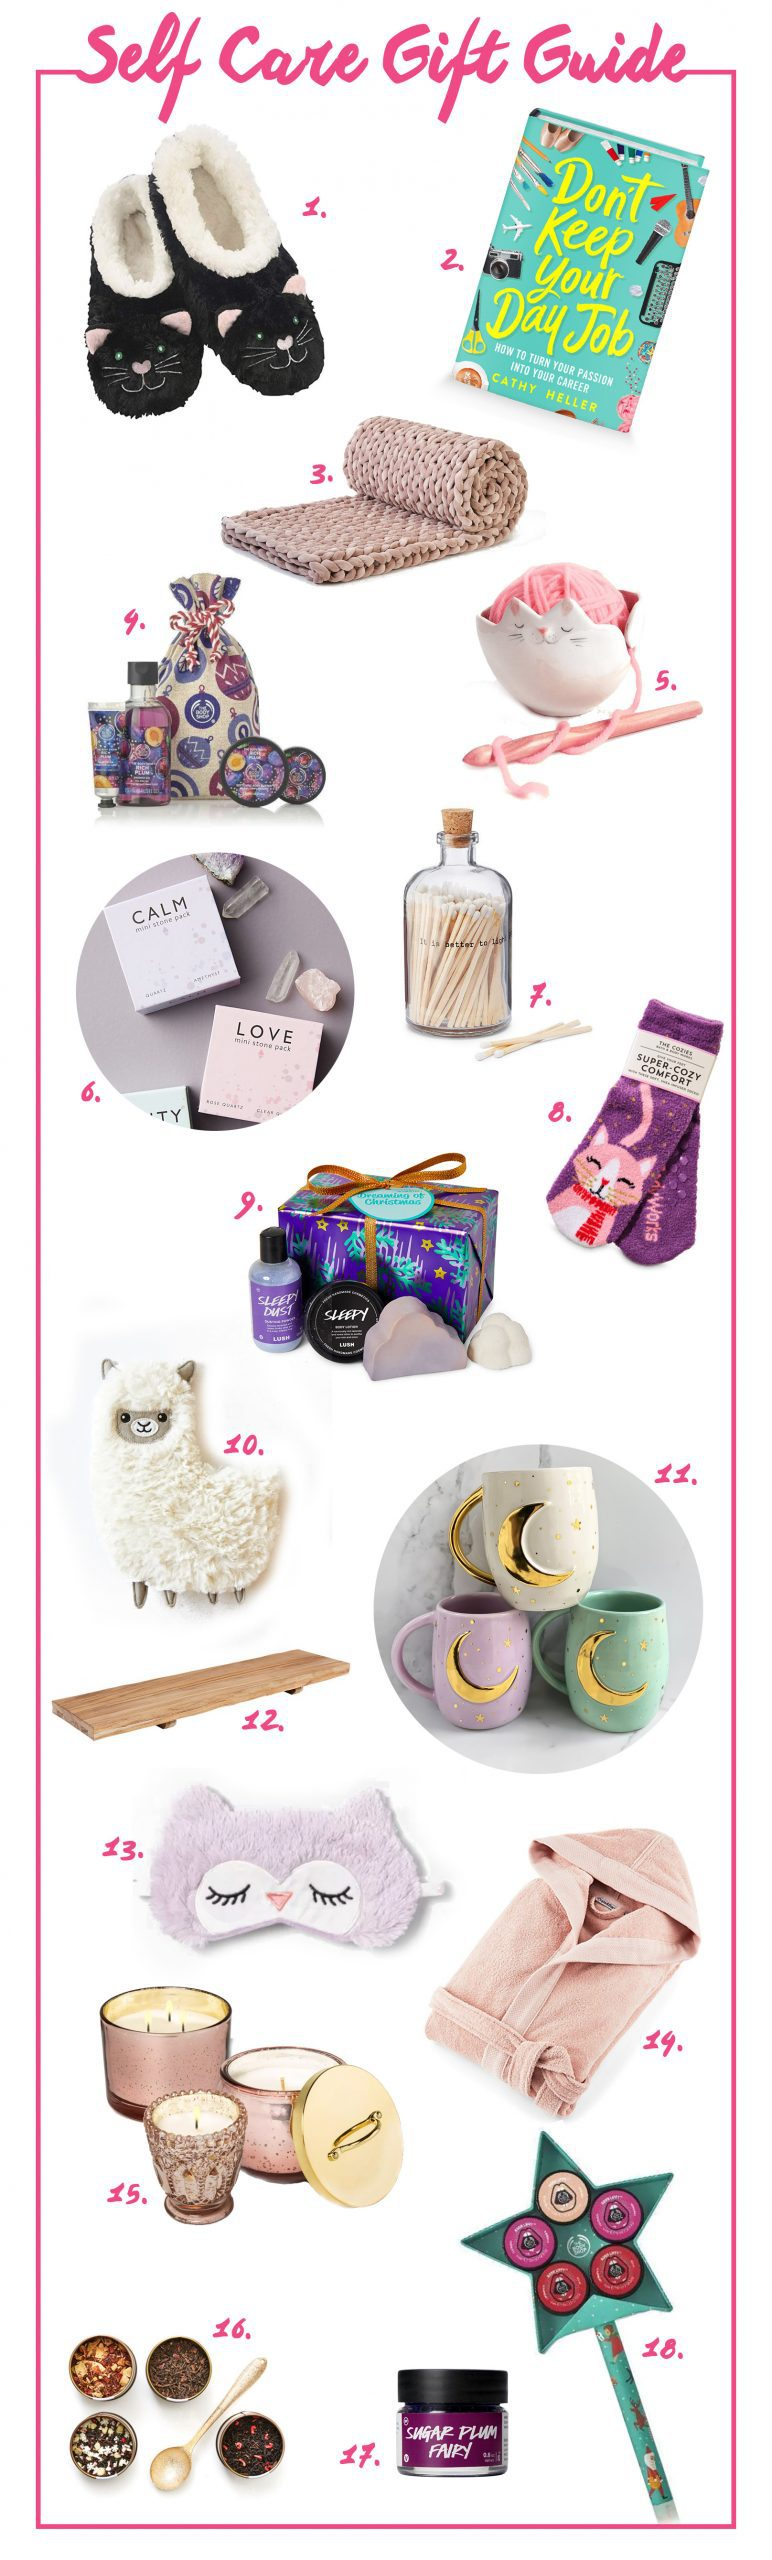 Self care gifts you should buy for me or someone else. This self-care gift guide is full of things that inspire relaxation: Furry cat slippers, self help books, weighted blanket, Body Shop gift set, Ceramic Cat Yarn Bowl, Mini Stone Gift Box, Fancy match striker, Shea-infused socks, Lush Dreaming Of Christmas gift set, Huggable Llama Cooling + Heating Pad, Pastel lunar mug, Wood bath caddy, Eyemask, Turkish Bath Robe, Target candles, Davids Tea Merry & Bright tea tin, Lips en pointe lip scrub, and all the lip glosses.